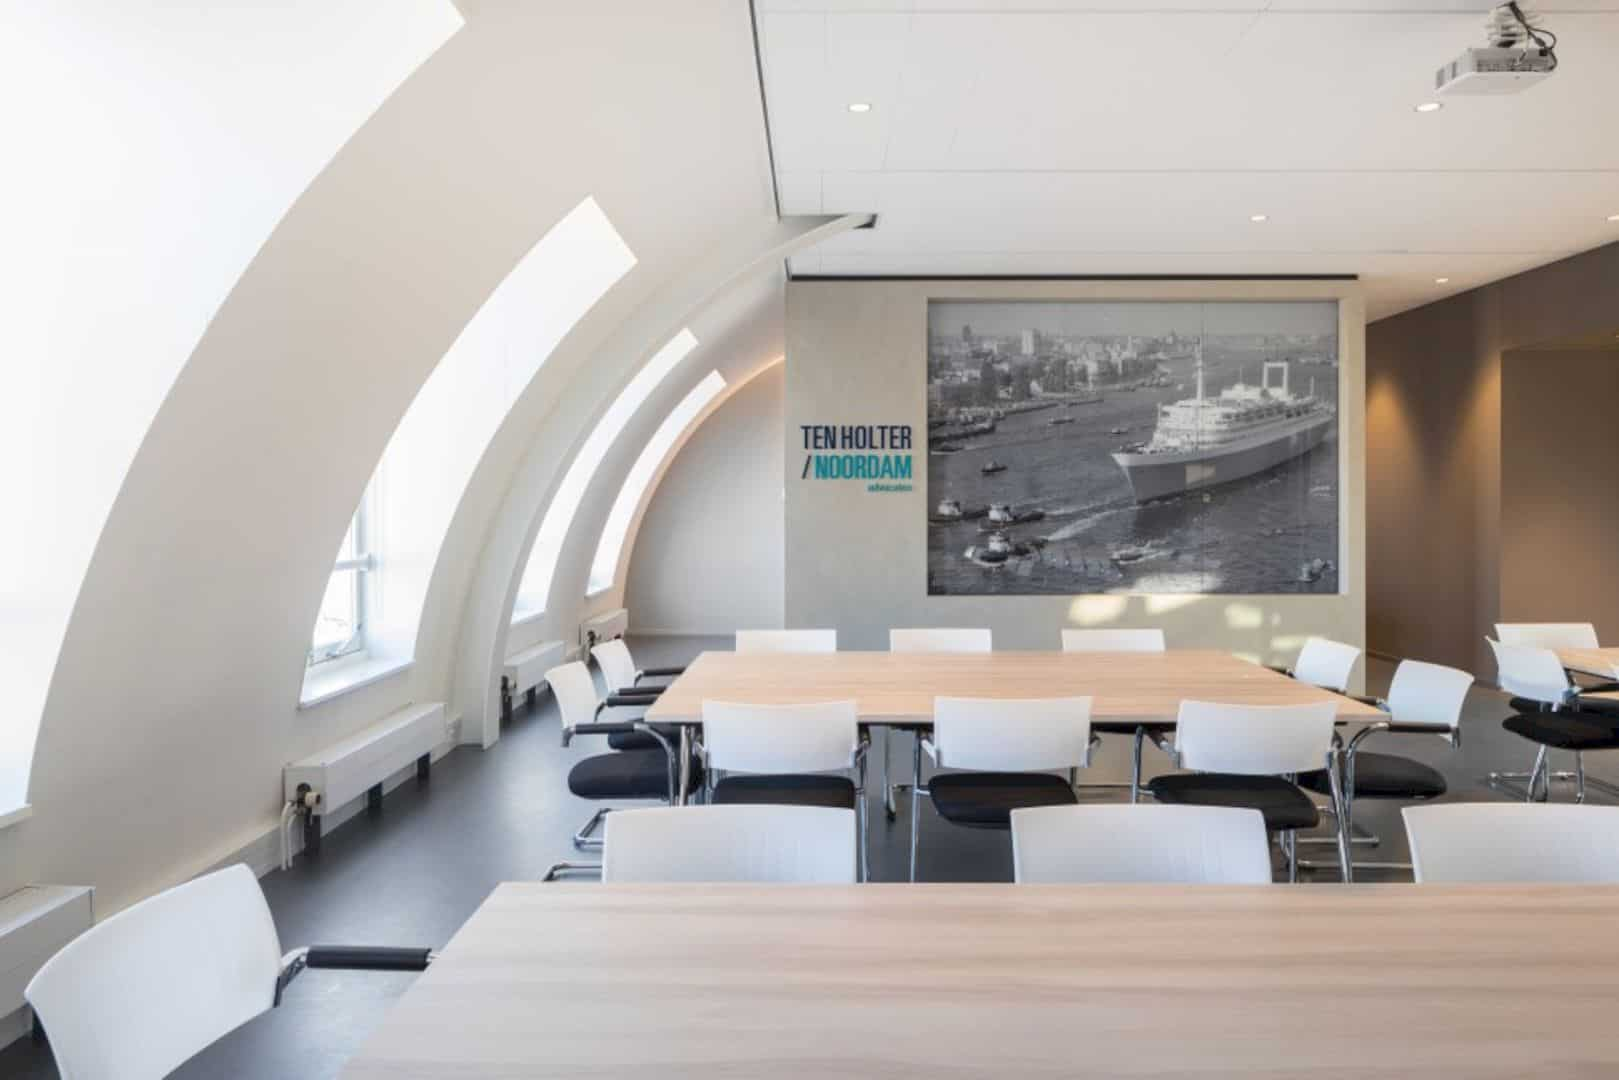 Ten Holter Noordam Advocaten: A Contemporary and Communicative Work Environment Adopting Pragmatic Design